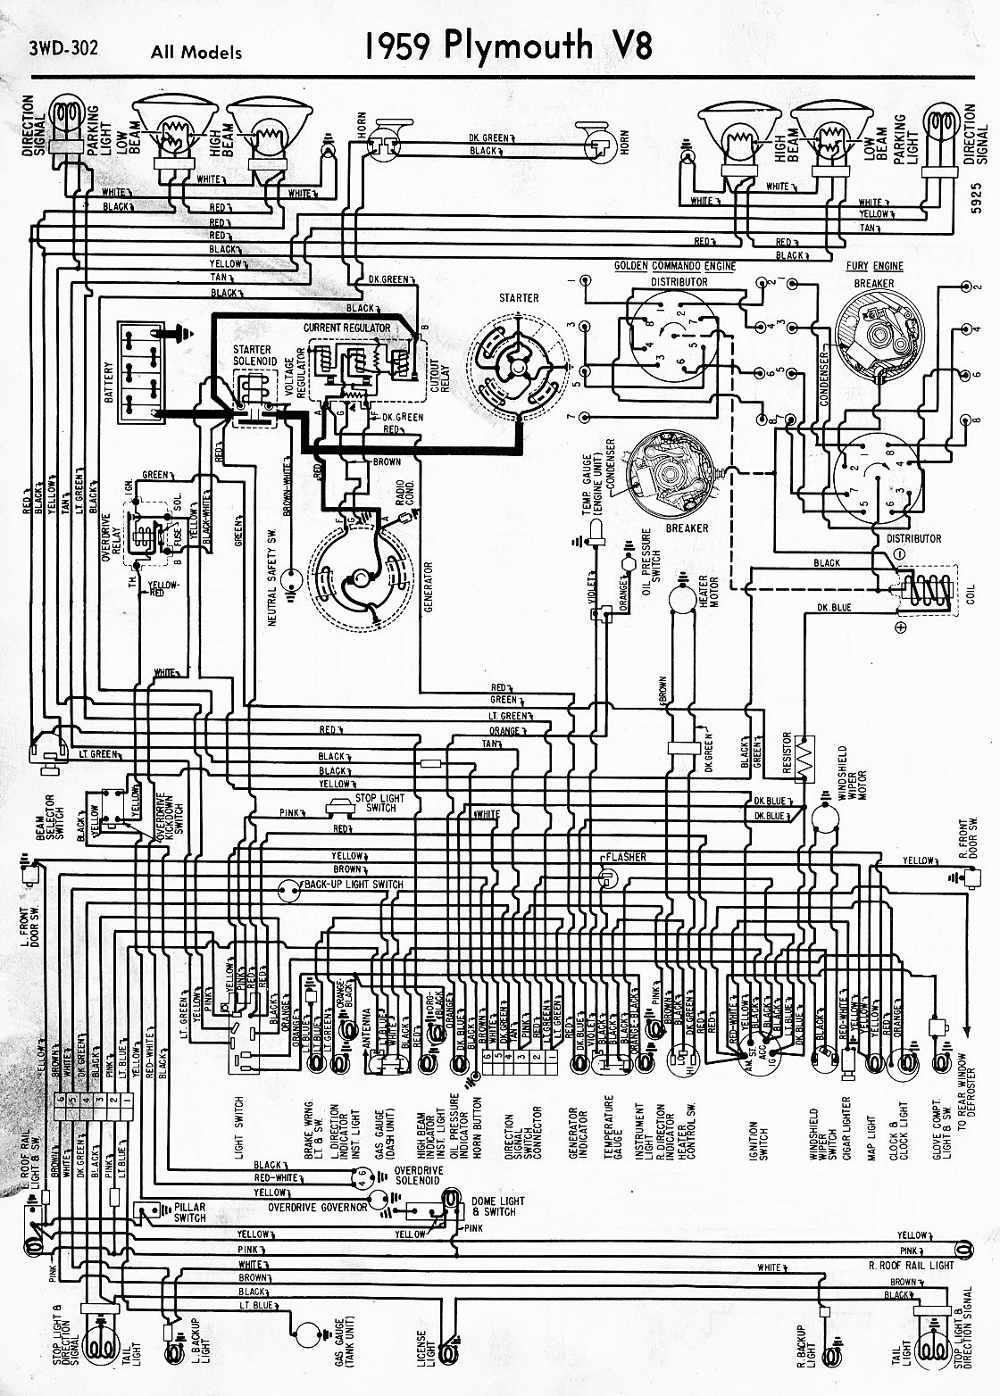 mercedes benz 2002 c240 fuse diagram a model a wiring diagram for ez, Wiring diagram